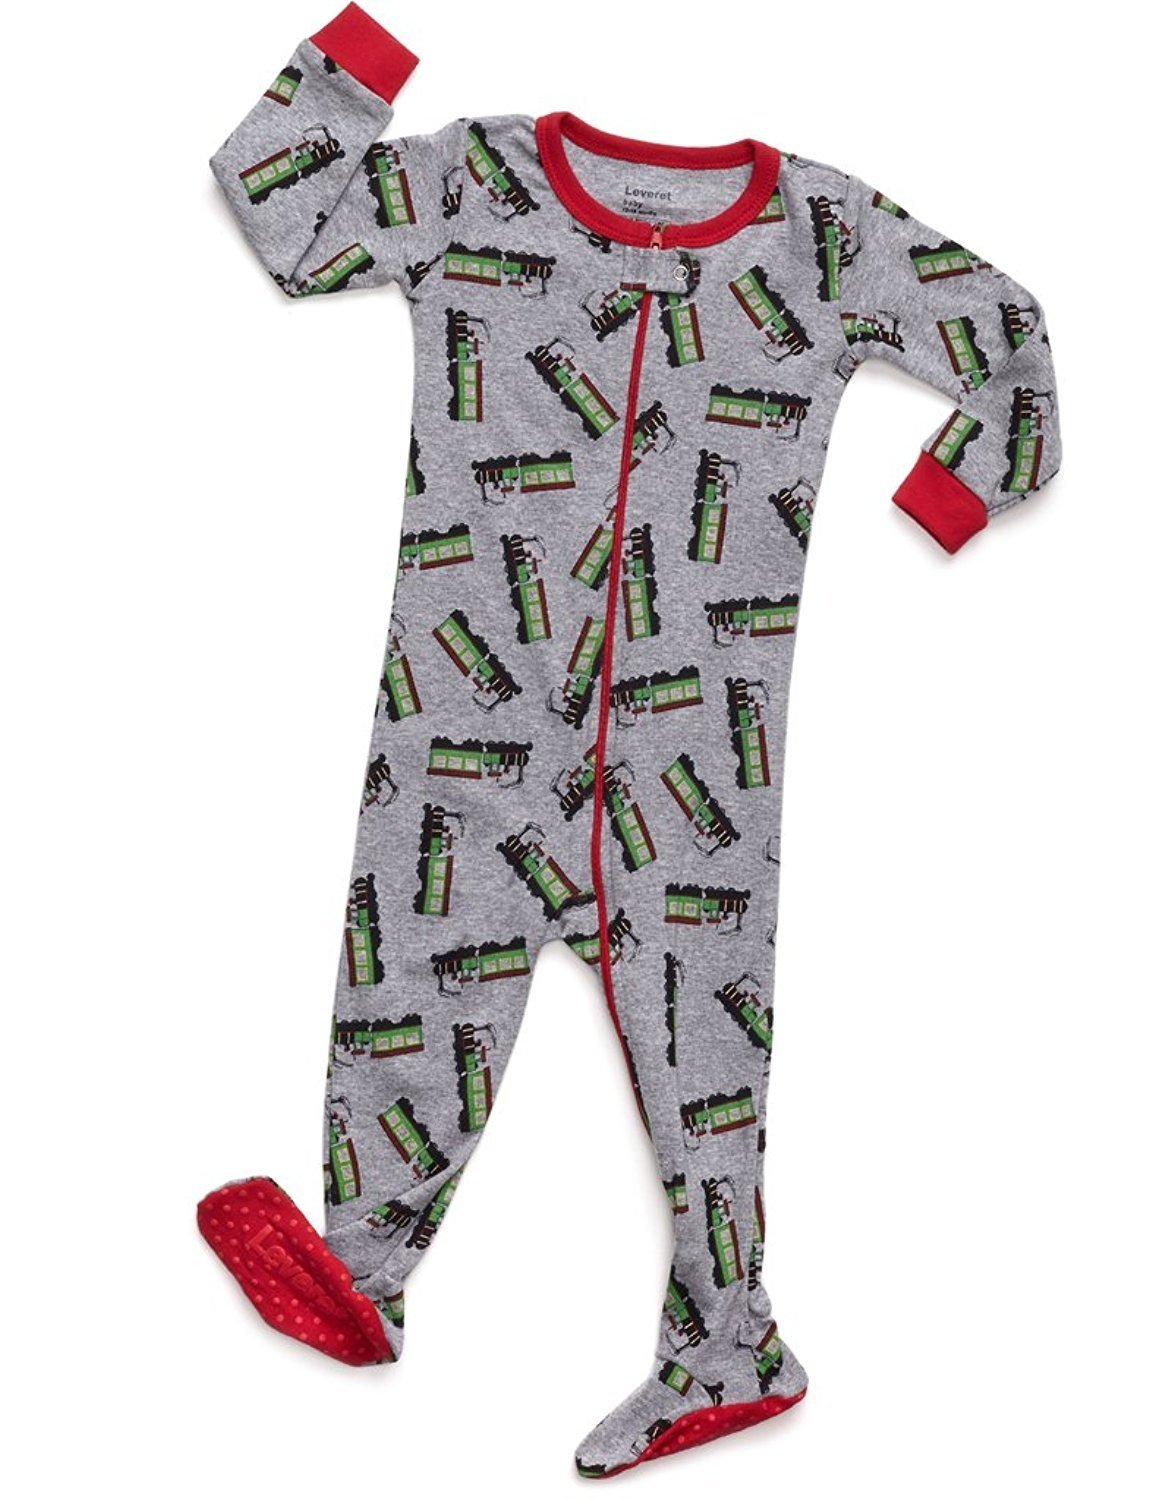 Leveret Train Footed Pajama Sleeper 100% Cotton 12-18 Months